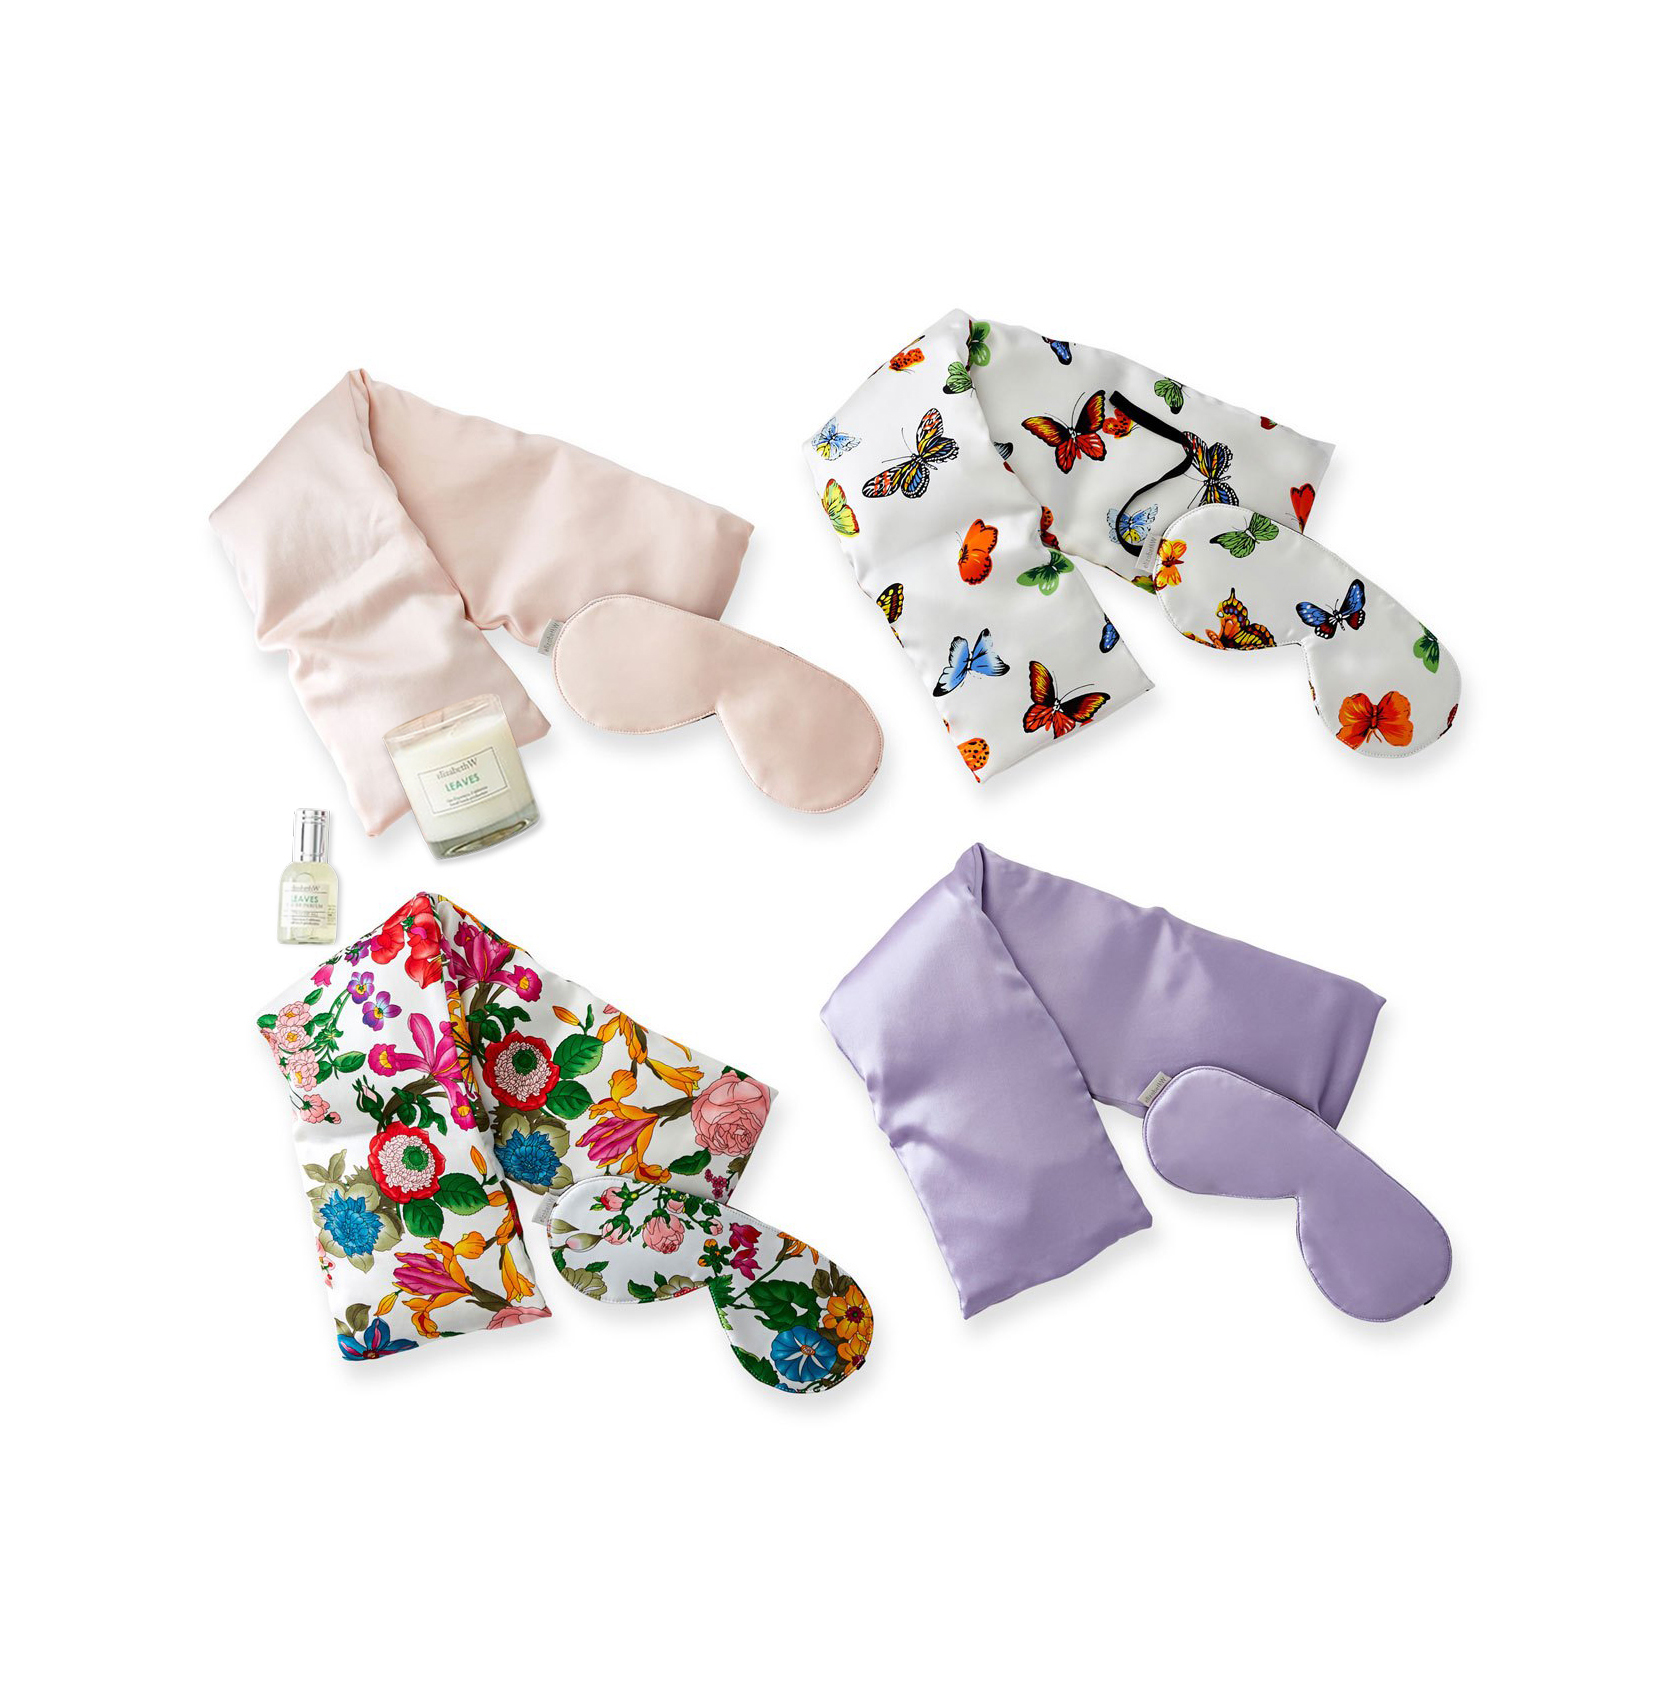 Floral Silk Eye Mask and Neck Wrap